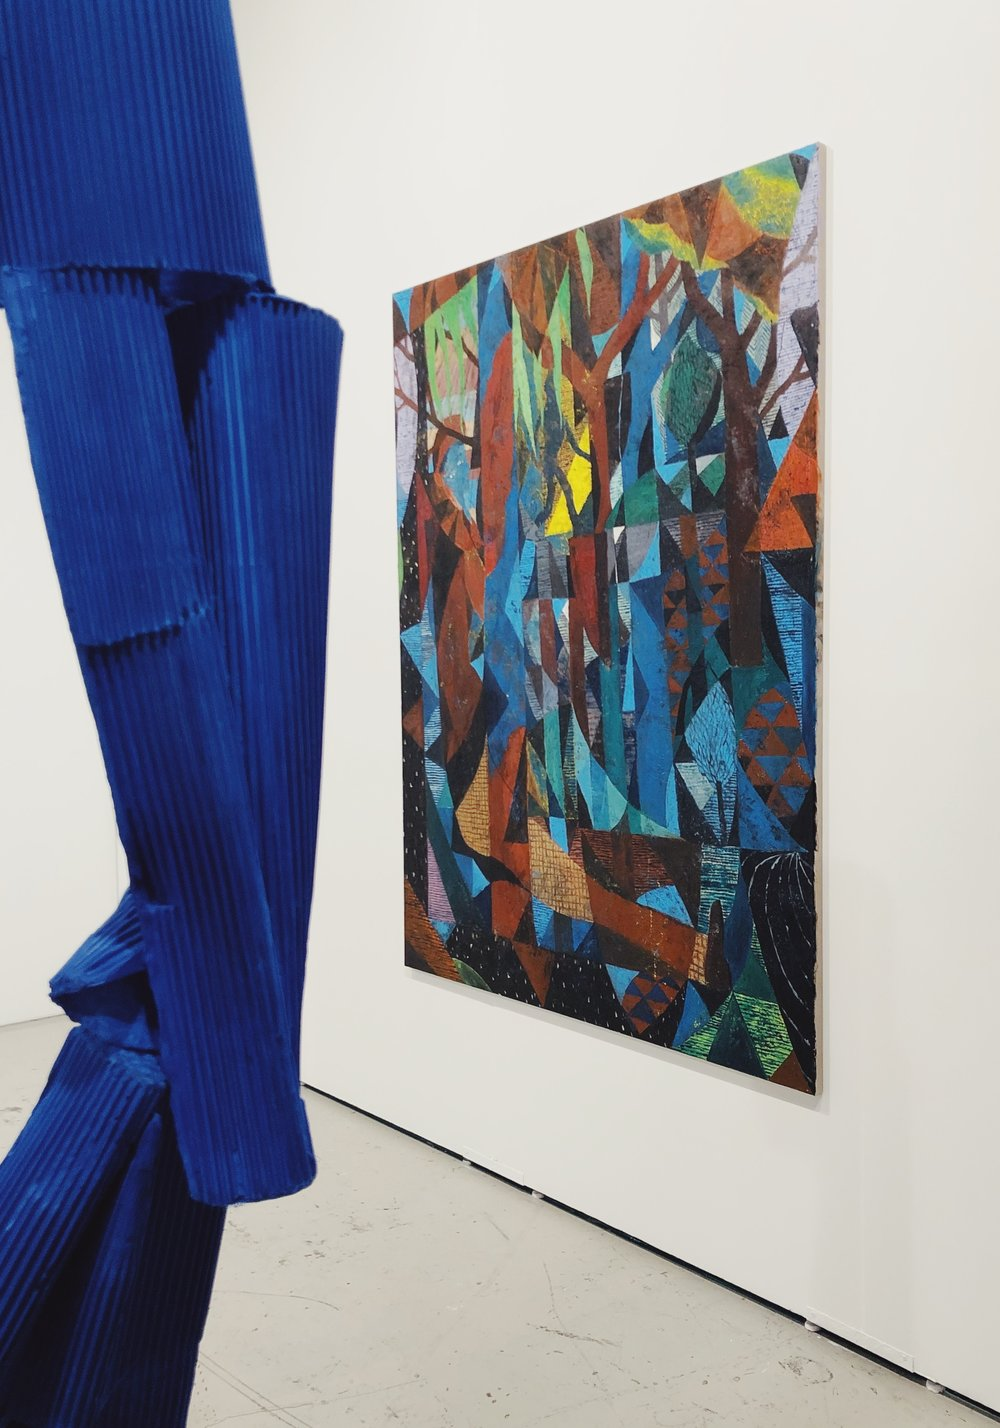 Henna Vainio and Tom Anholt at  Josh Lilley Gallery  at Art LA Contemporary